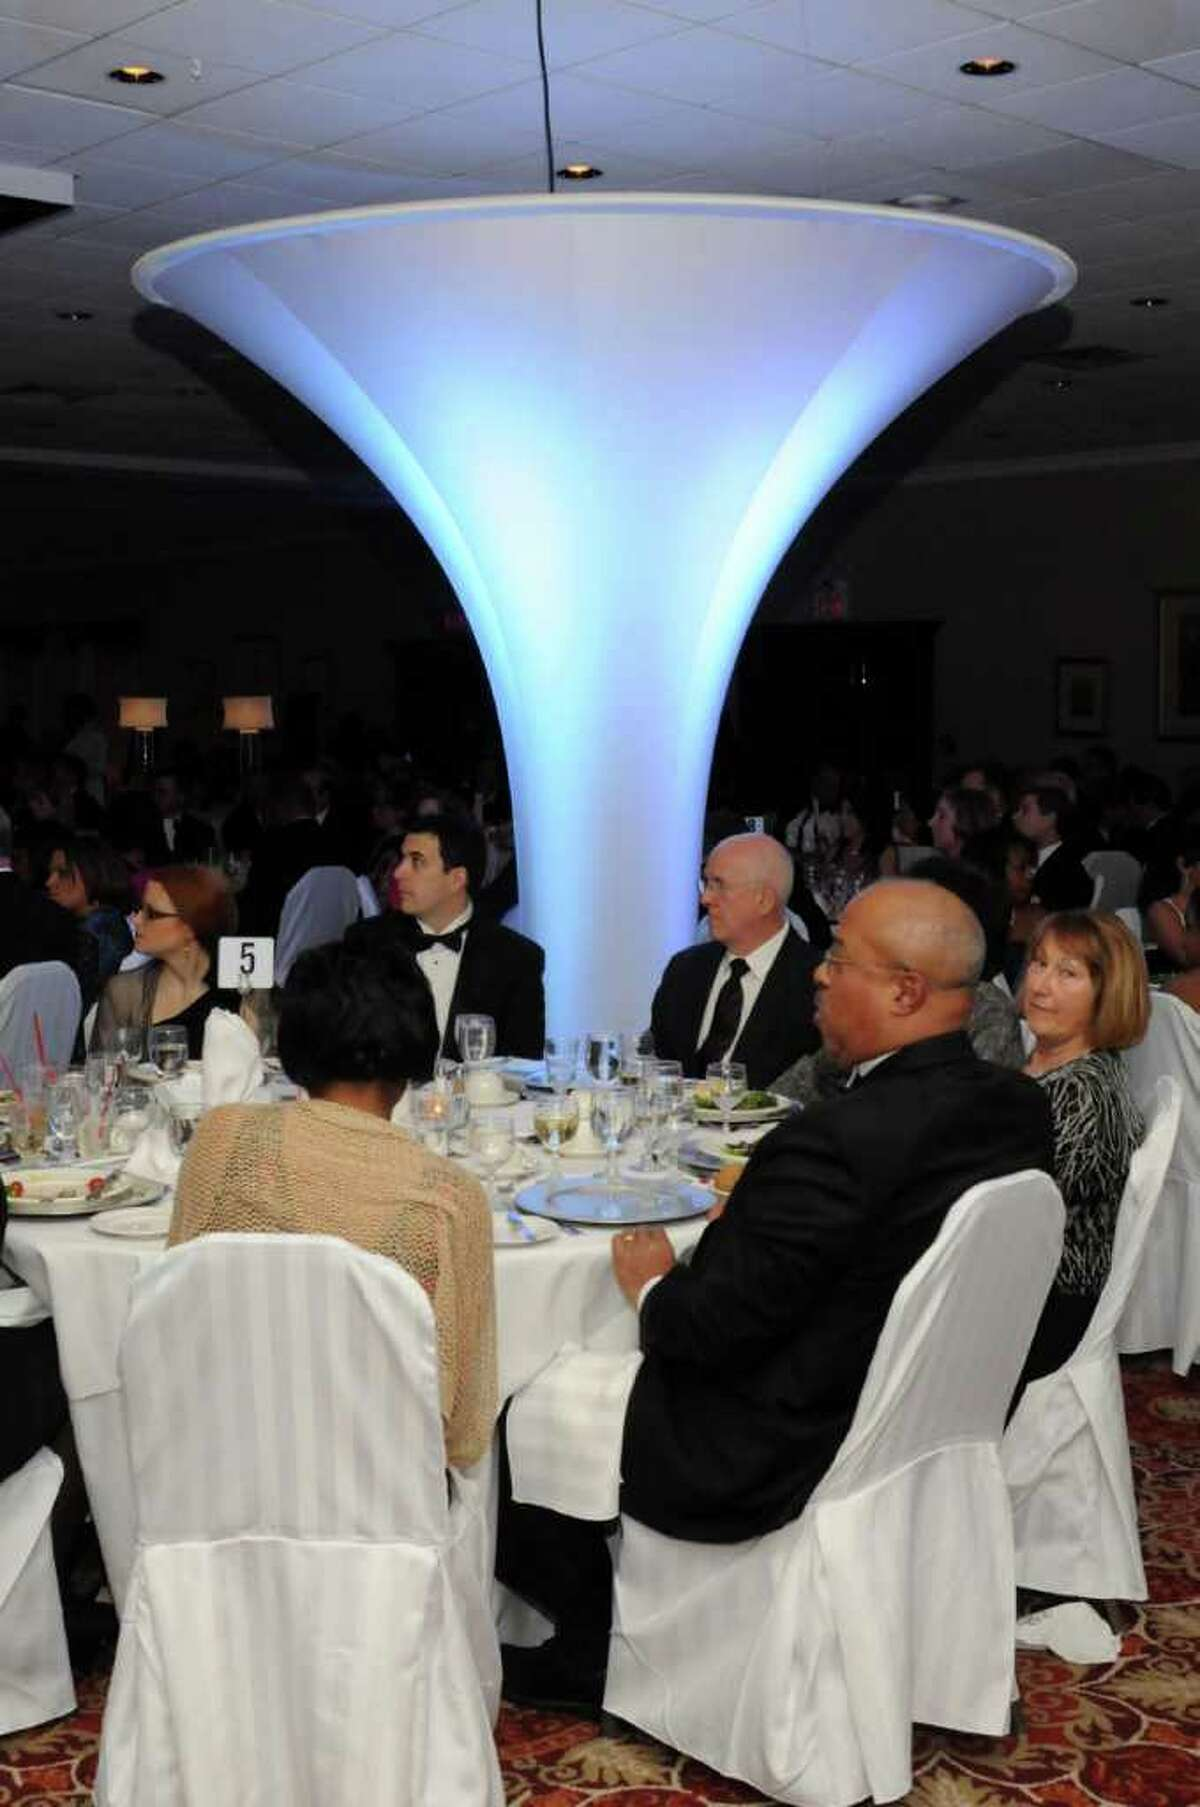 The Hord Foundation Inc. held it's 22nd Annual Gala at the Amber Room Colonnade in Danbury on Saturday Feb. 27, 2011.